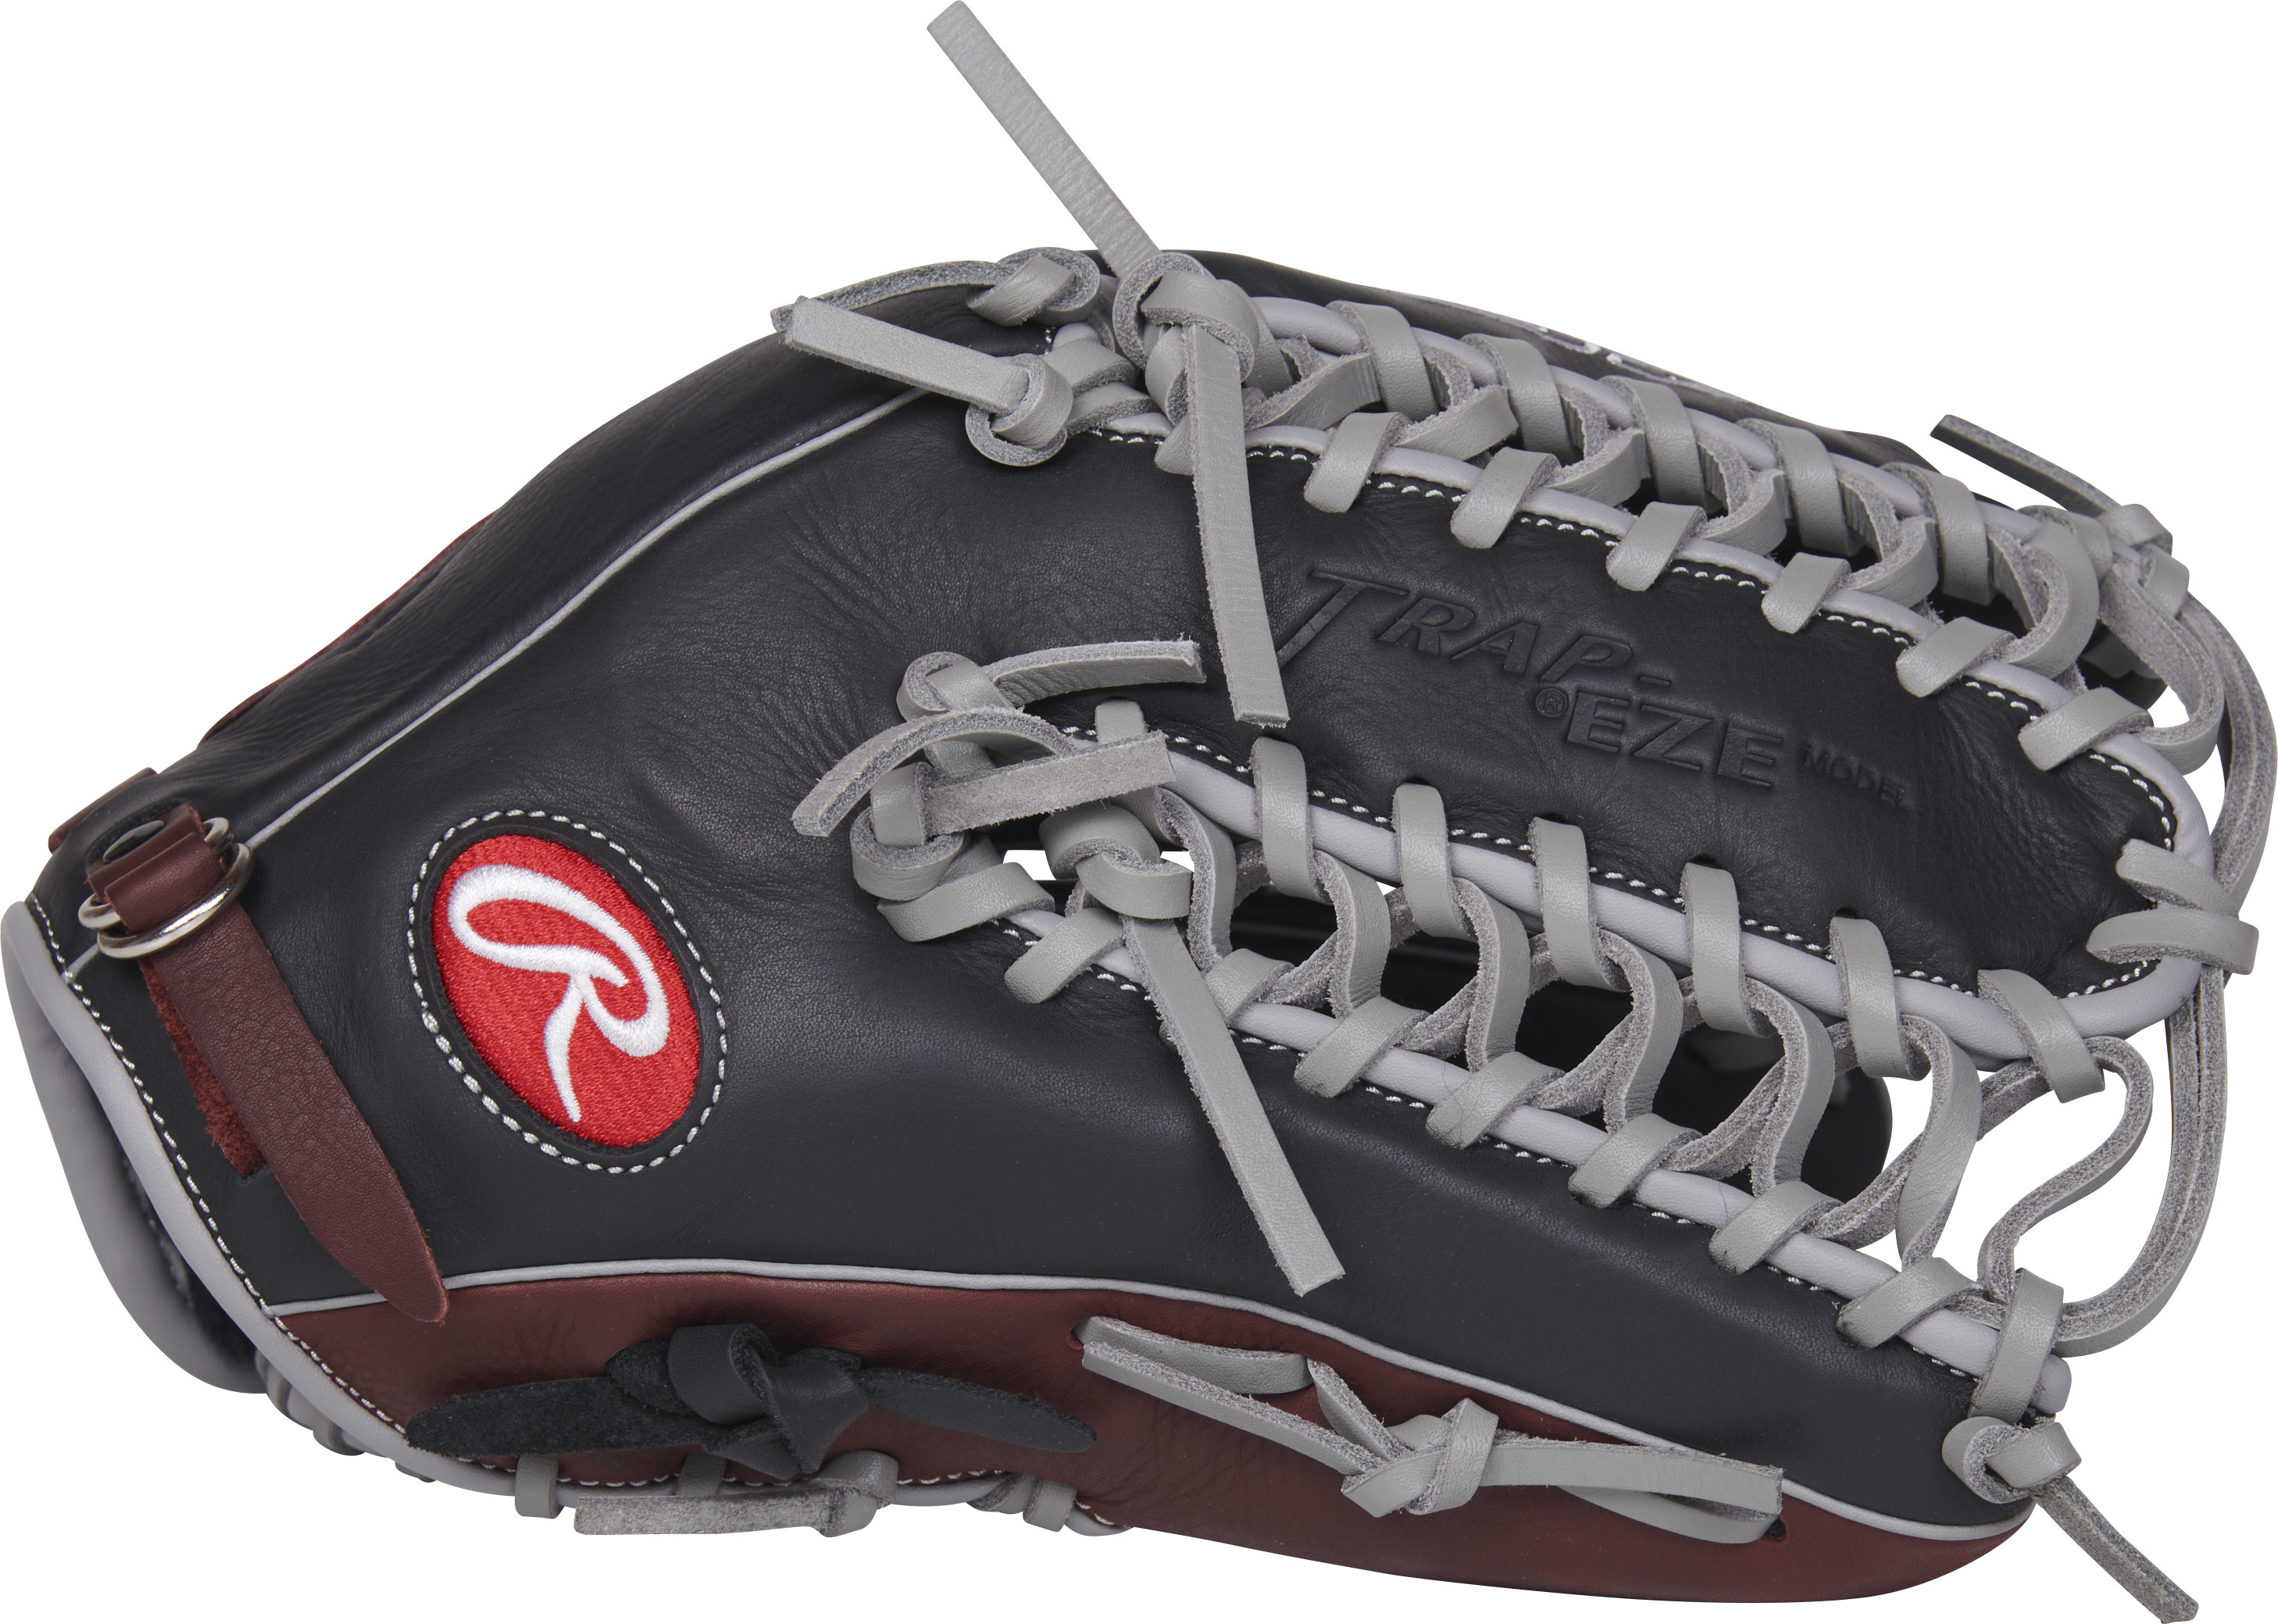 http://www.bestbatdeals.com/images/gloves/rawlings/R96019BSGFS-3.jpg